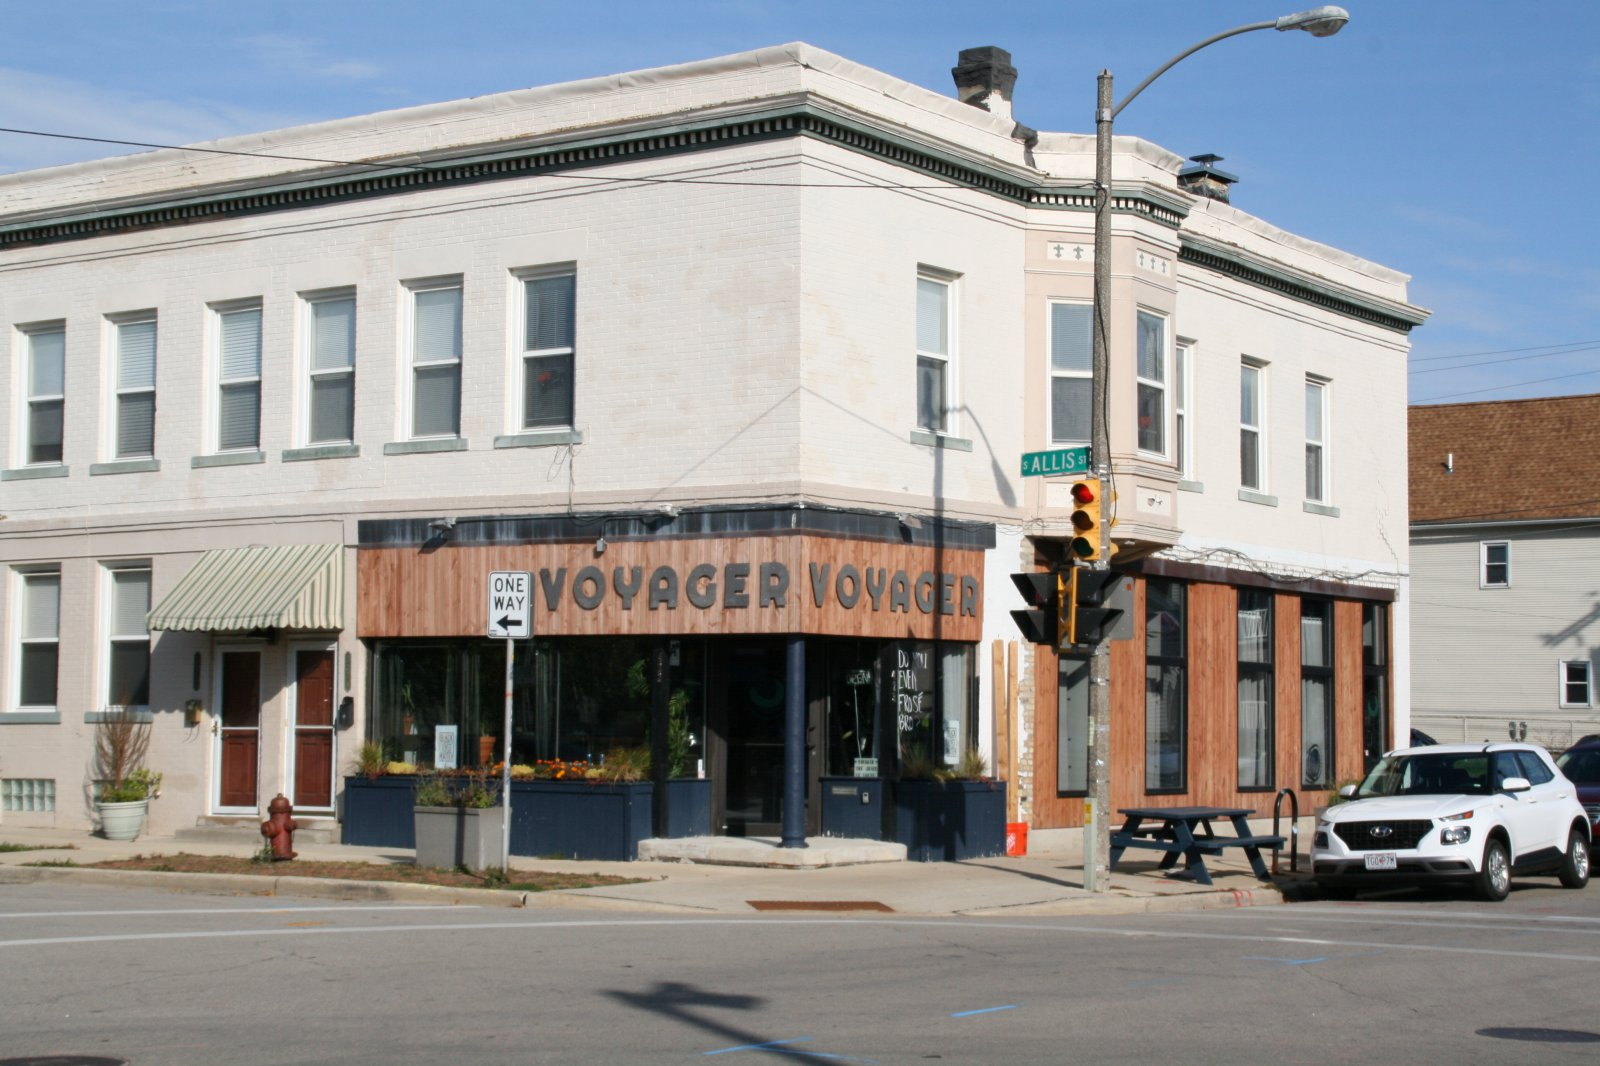 Voyager, 422 E. Lincoln Ave.